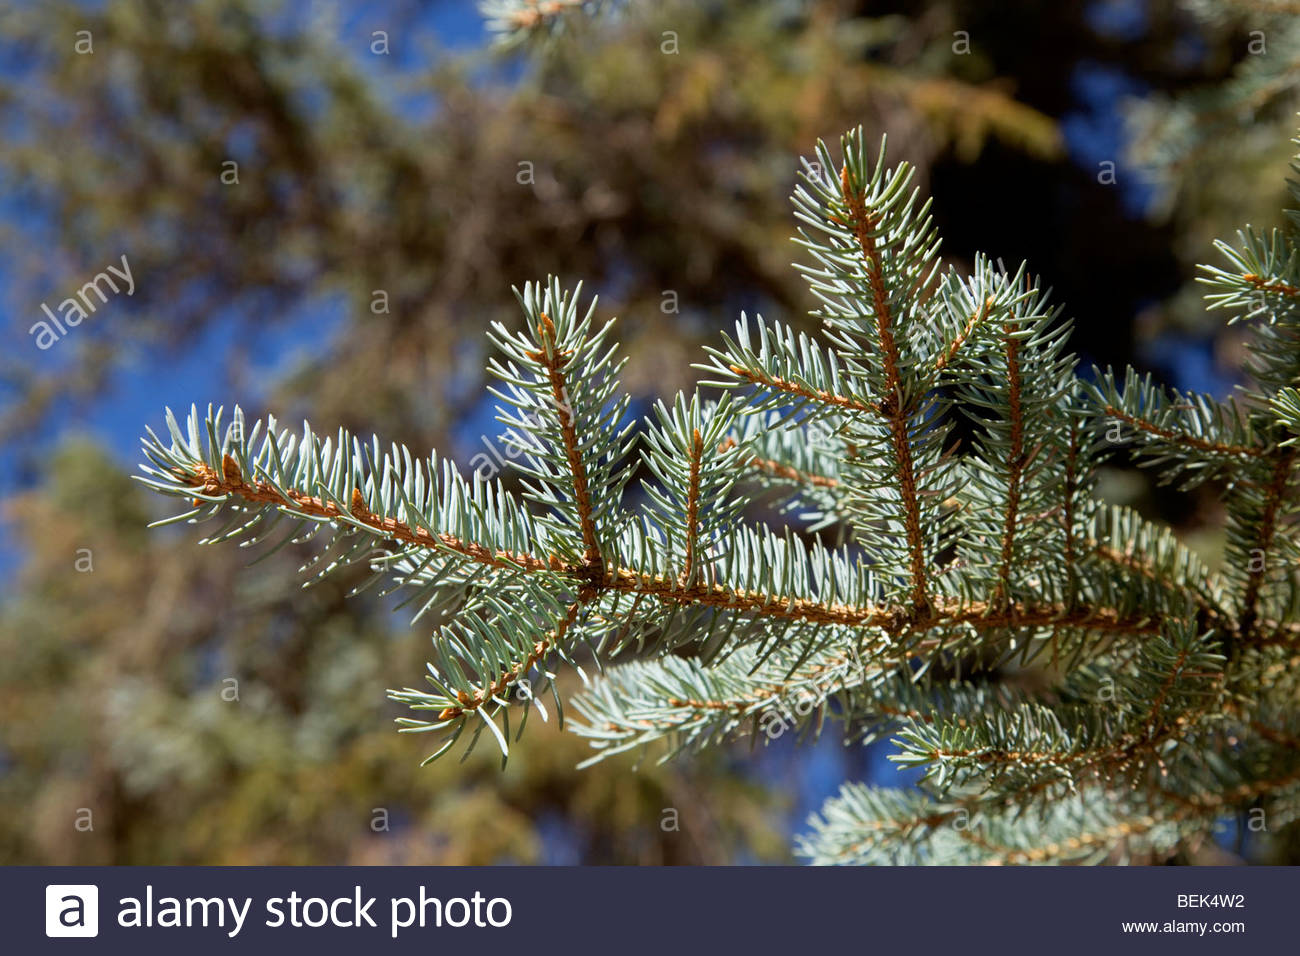 Colorado Blue Spruce Picea pungens close-up needles Stock Photo